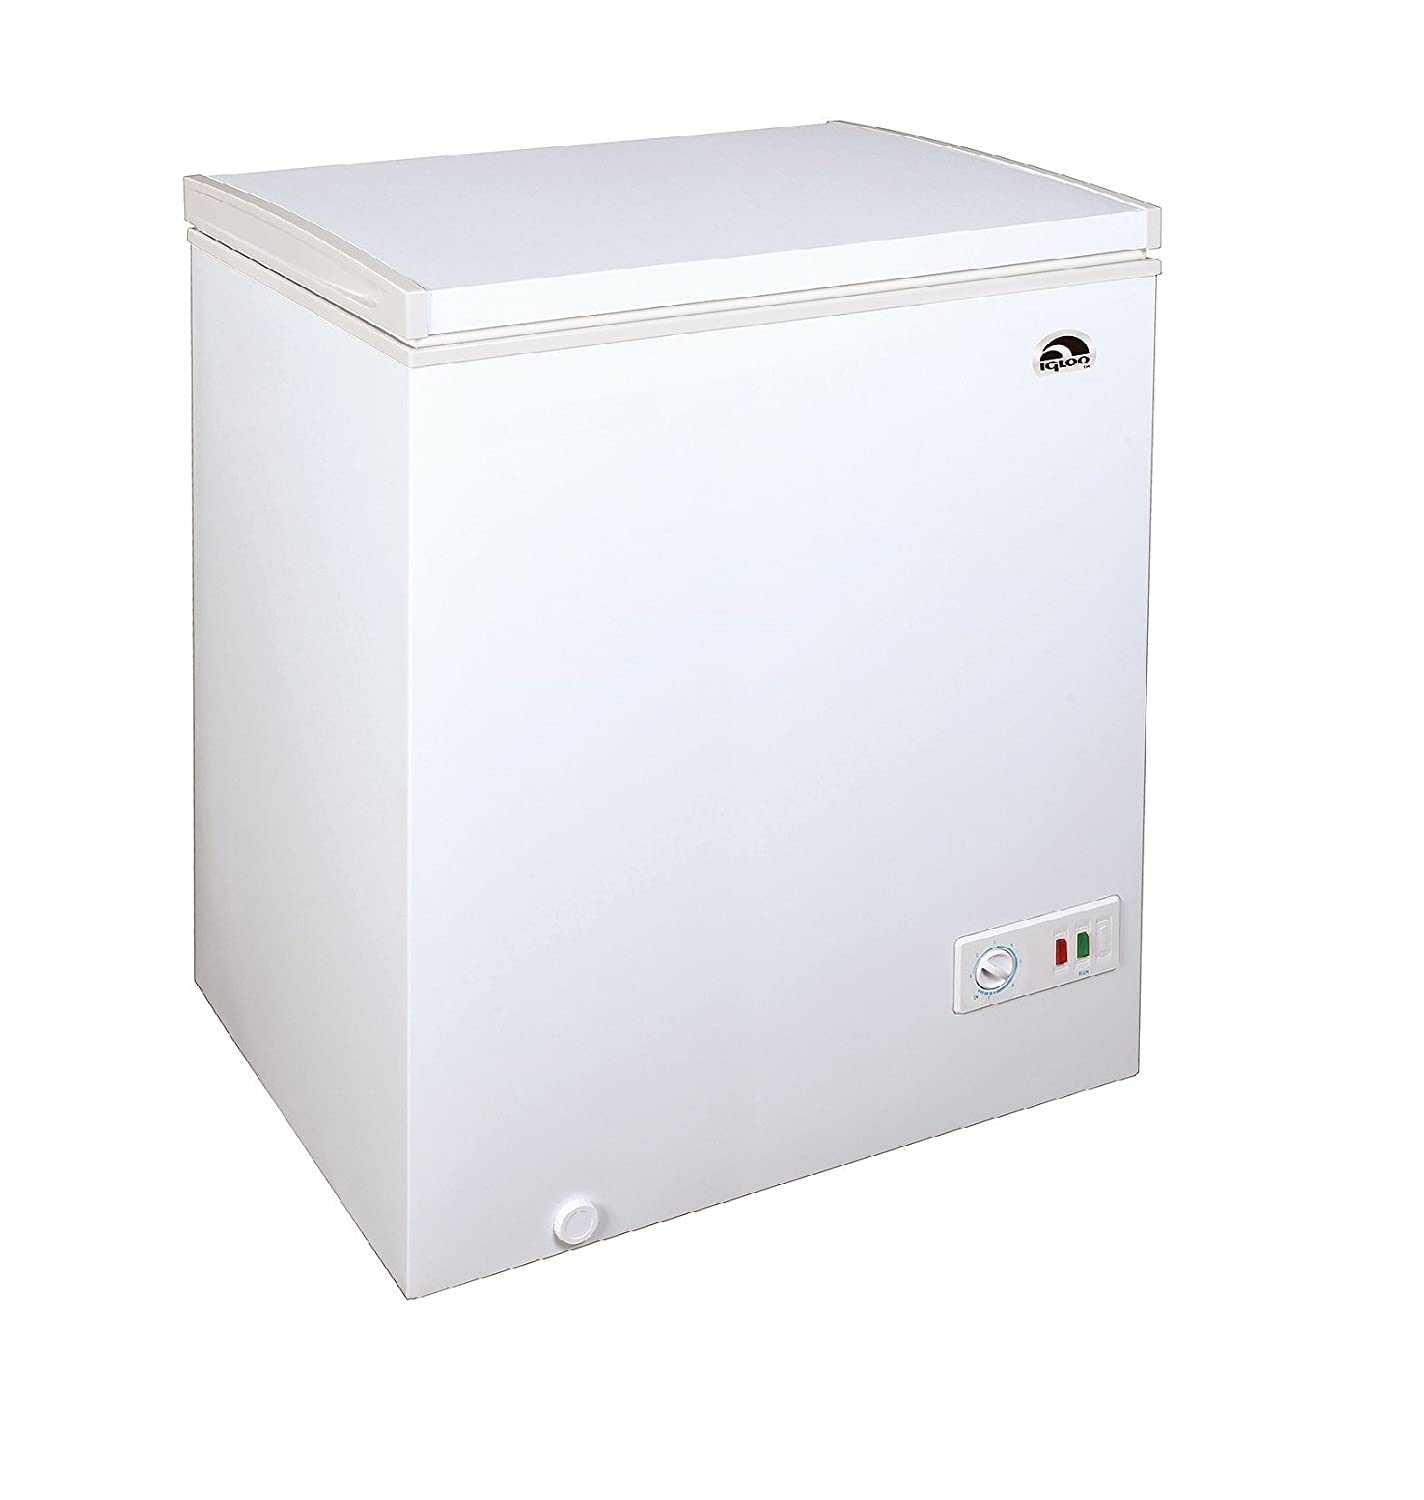 Igloo Chest Freezer (5.1 cu. ft.) White